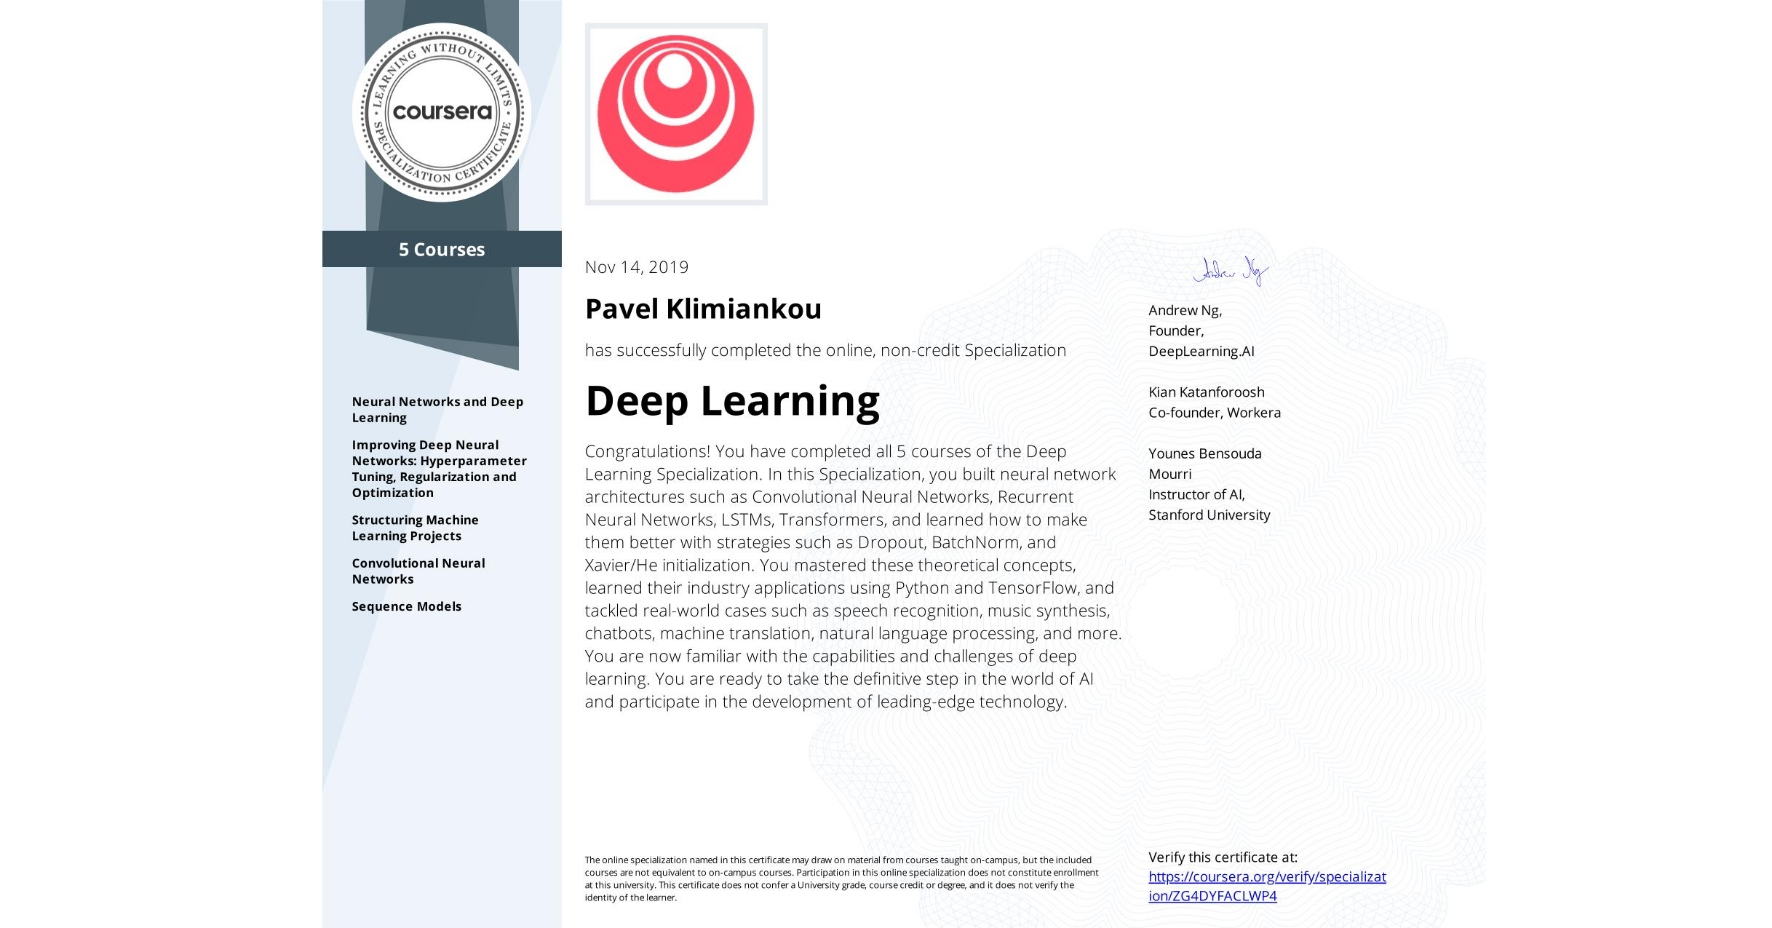 View certificate for Pavel Klimiankou, Deep Learning, offered through Coursera. Congratulations! You have completed all five courses of the Deep Learning Specialization.  In this Specialization, you built neural network architectures such as Convolutional Neural Networks, Recurrent Neural Networks, LSTMs, Transformers and learned how to make them better with strategies such as Dropout, BatchNorm, Xavier/He initialization, and more. You mastered these theoretical concepts and their application using Python and TensorFlow and also tackled real-world case studies such as autonomous driving, sign language reading, music generation, computer vision, speech recognition, and natural language processing.   You're now familiar with the capabilities, challenges, and consequences of deep learning and are ready to participate in the development of leading-edge AI technology.